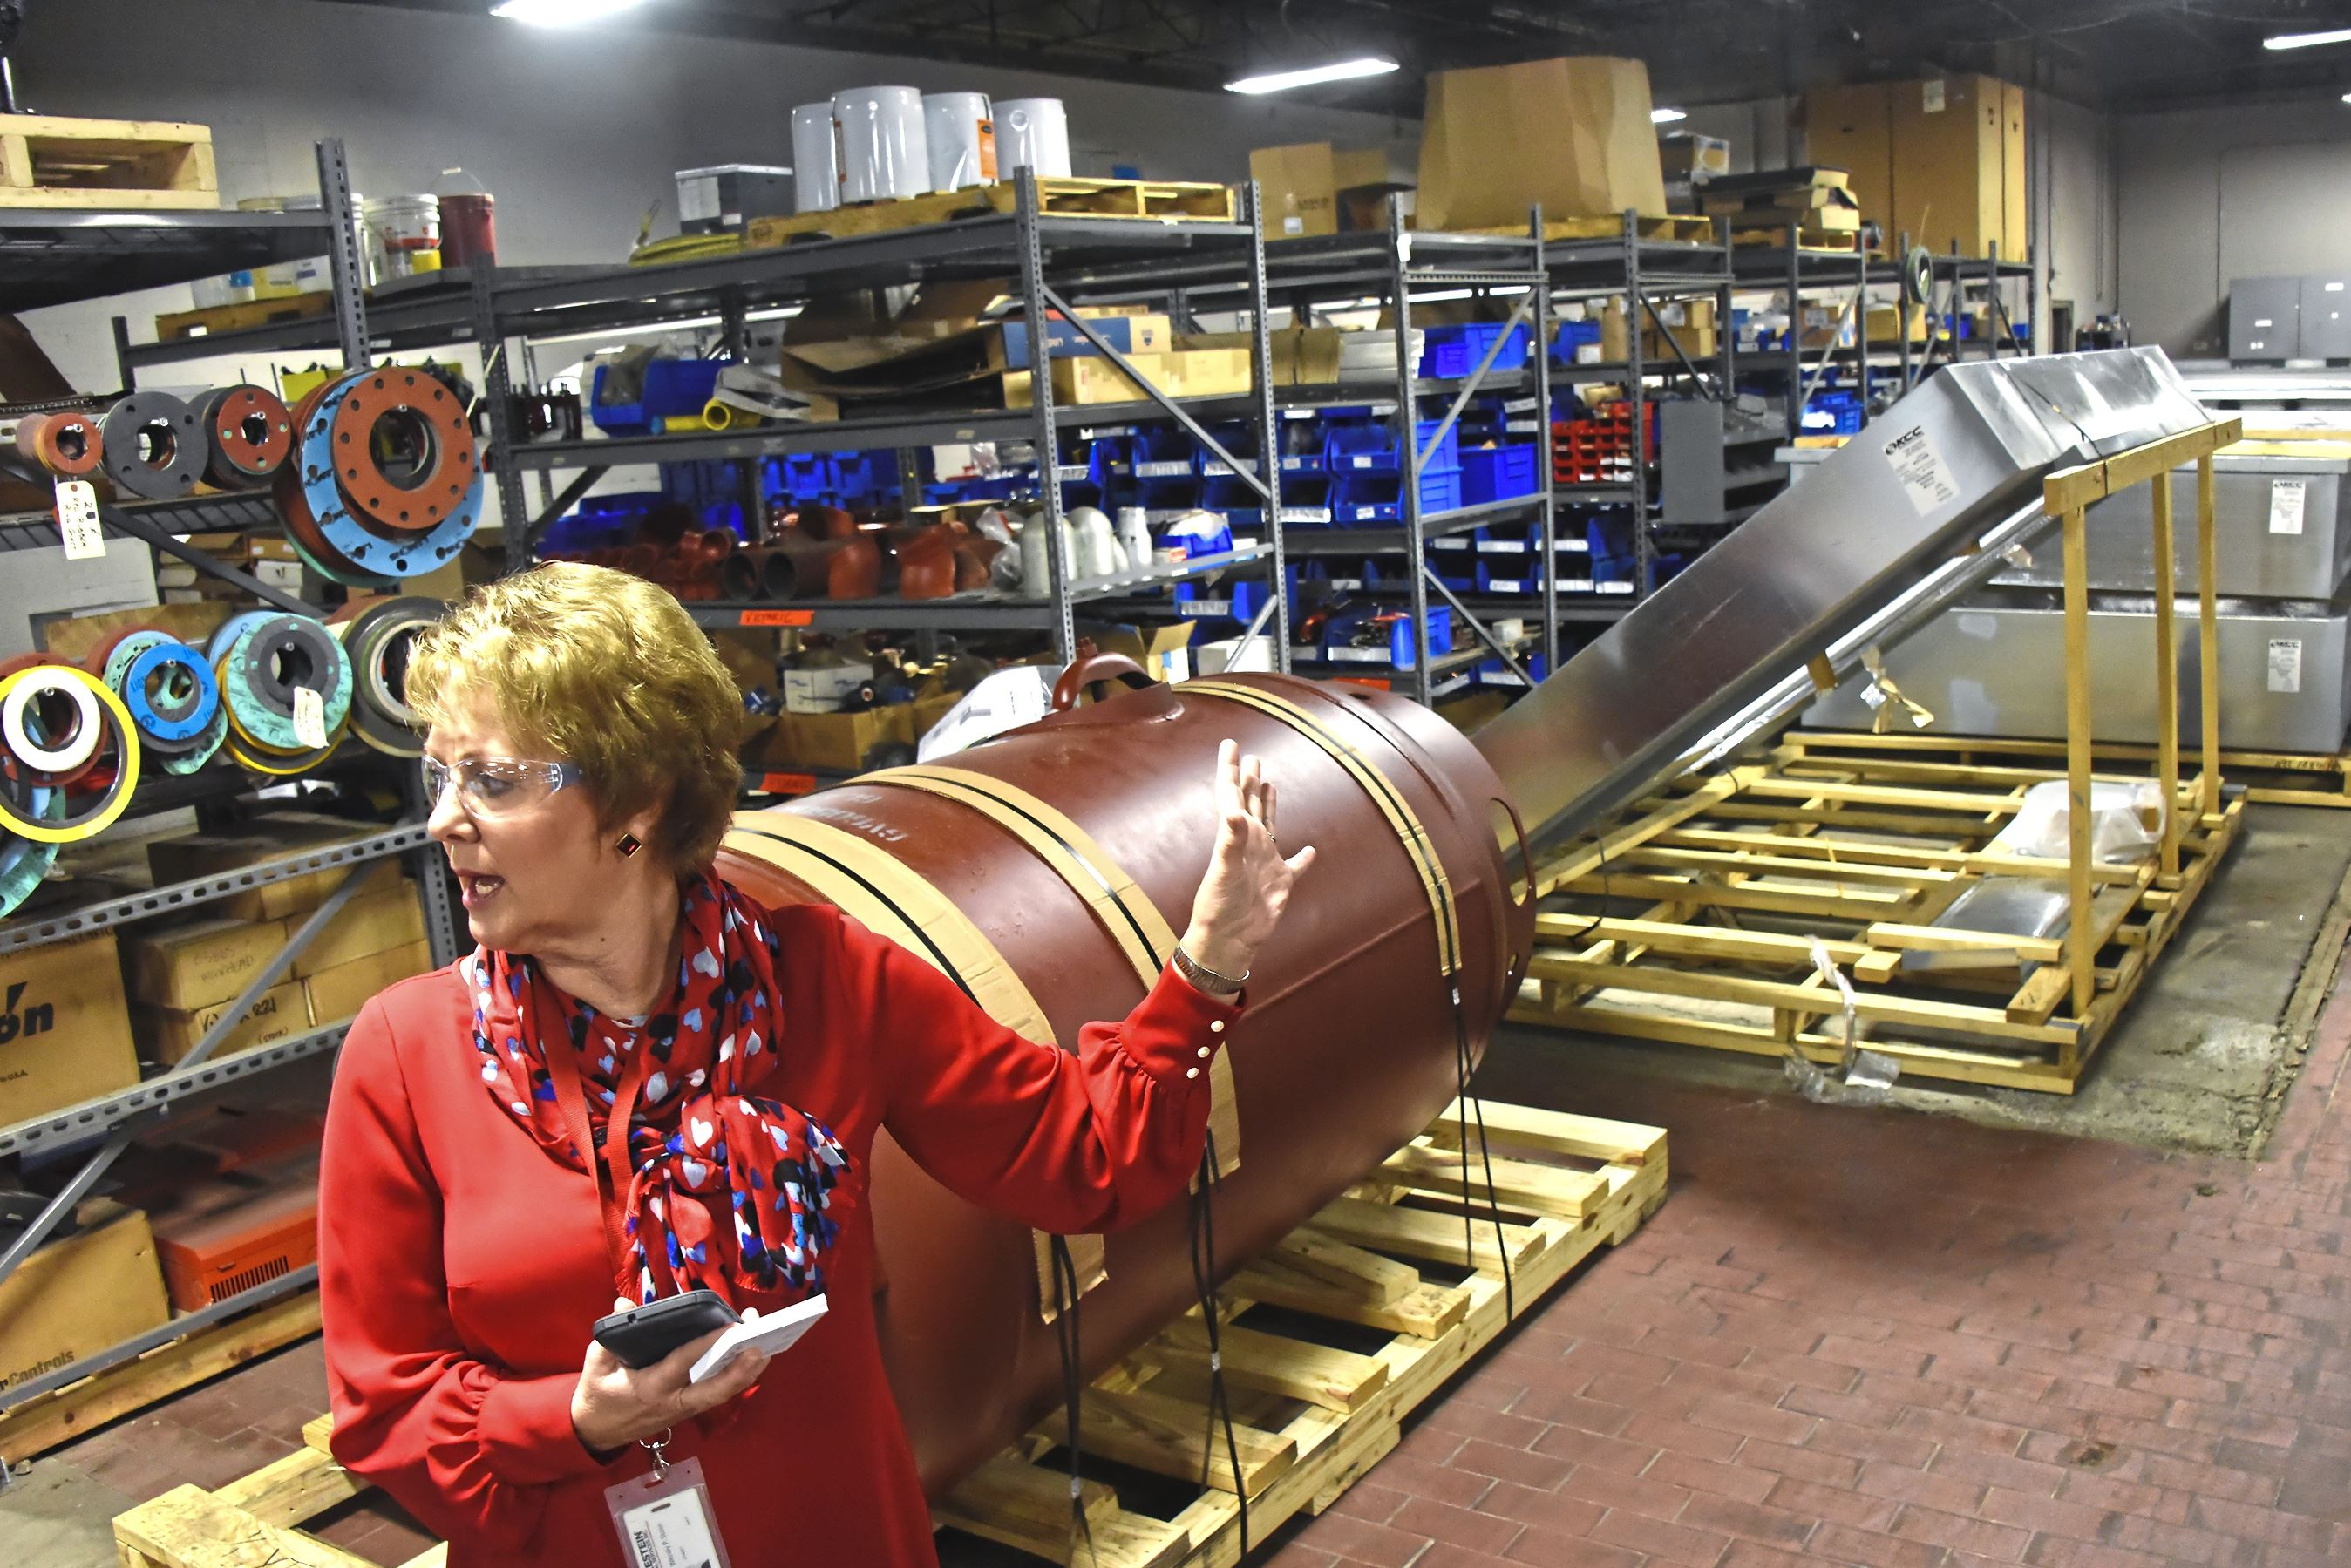 20170906dsCleanJobsBiz01 Wendy Staso , Owner, President and CEO of Huckestein Mechanical Services. Inc., gives a tour of their operations at their Metropolitan Street facility Wednesday.